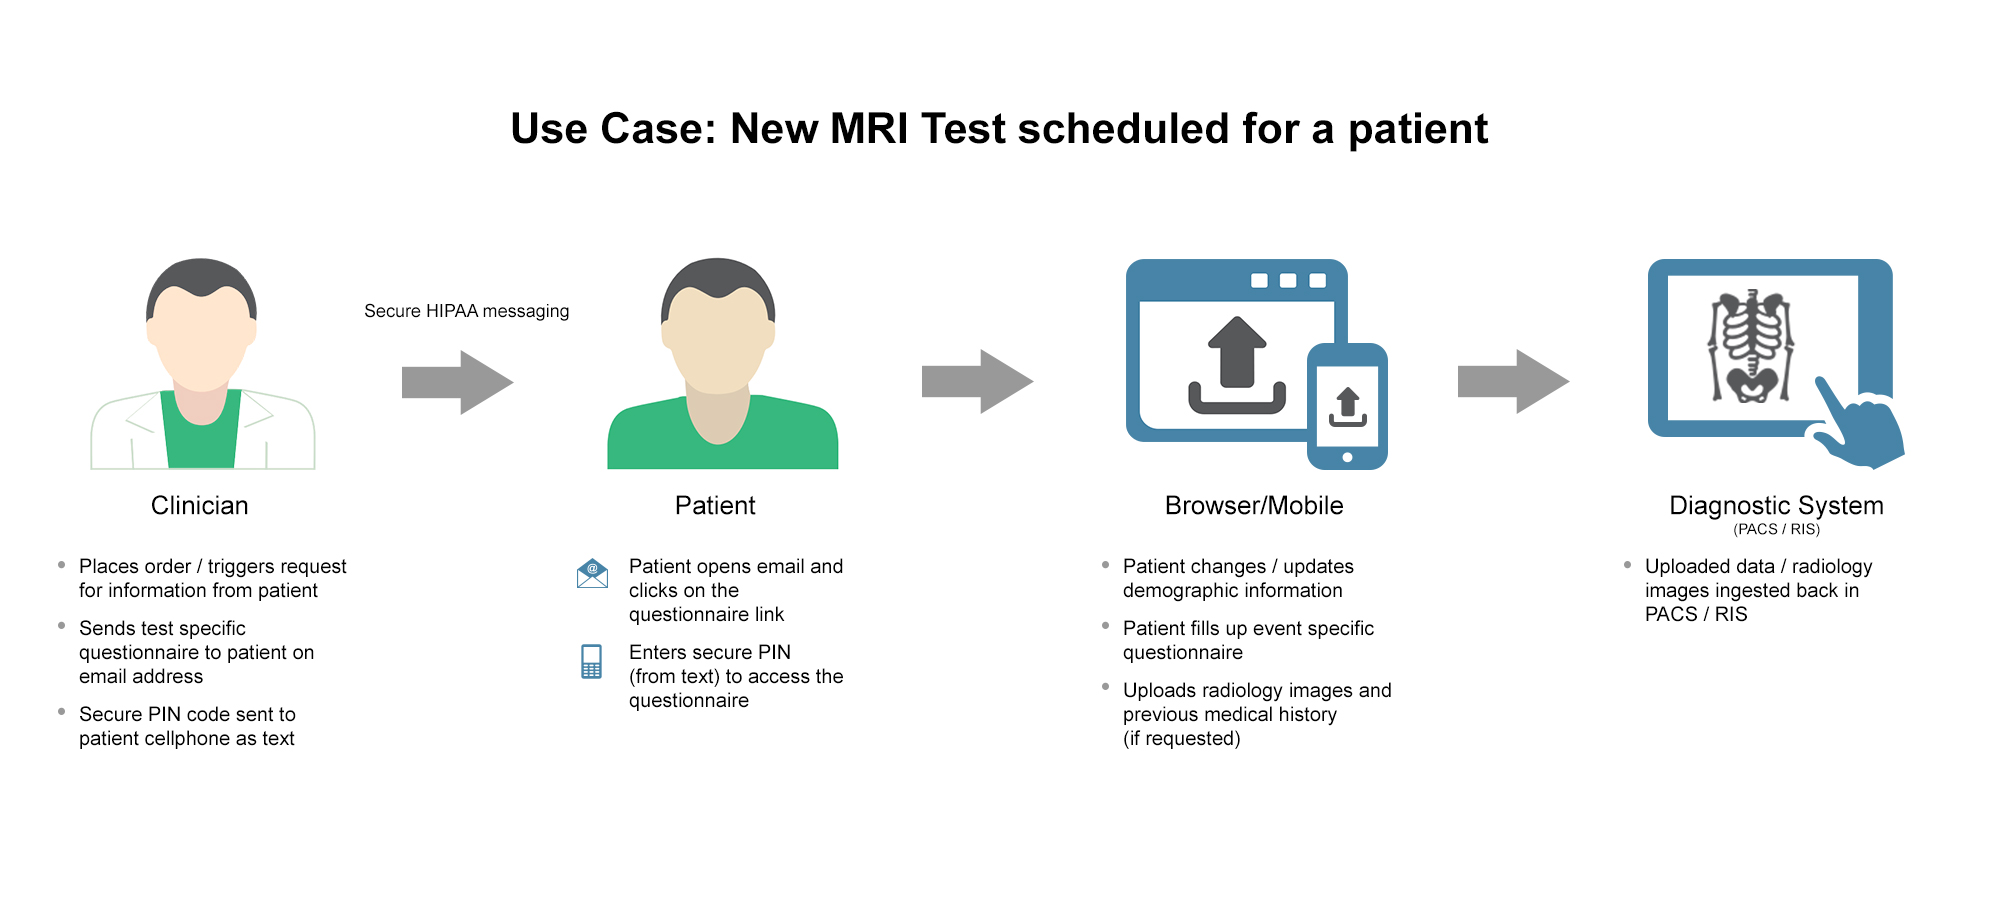 Patient documentation platform to debut at rsna axis imaging news mphrx mri use case diagram ccuart Choice Image